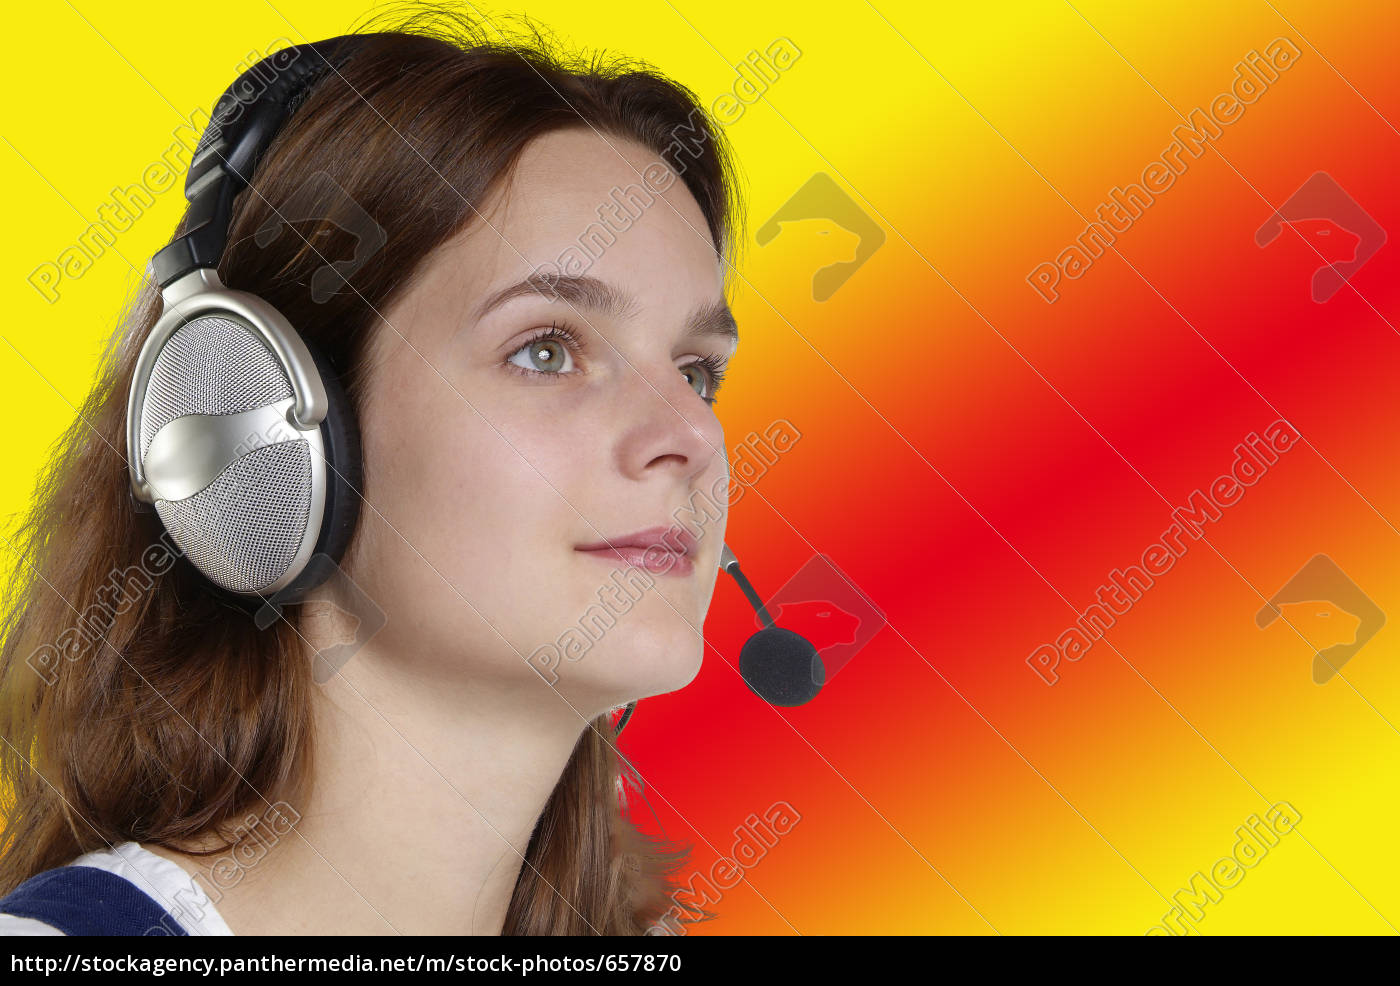 woman, with, headset - 657870